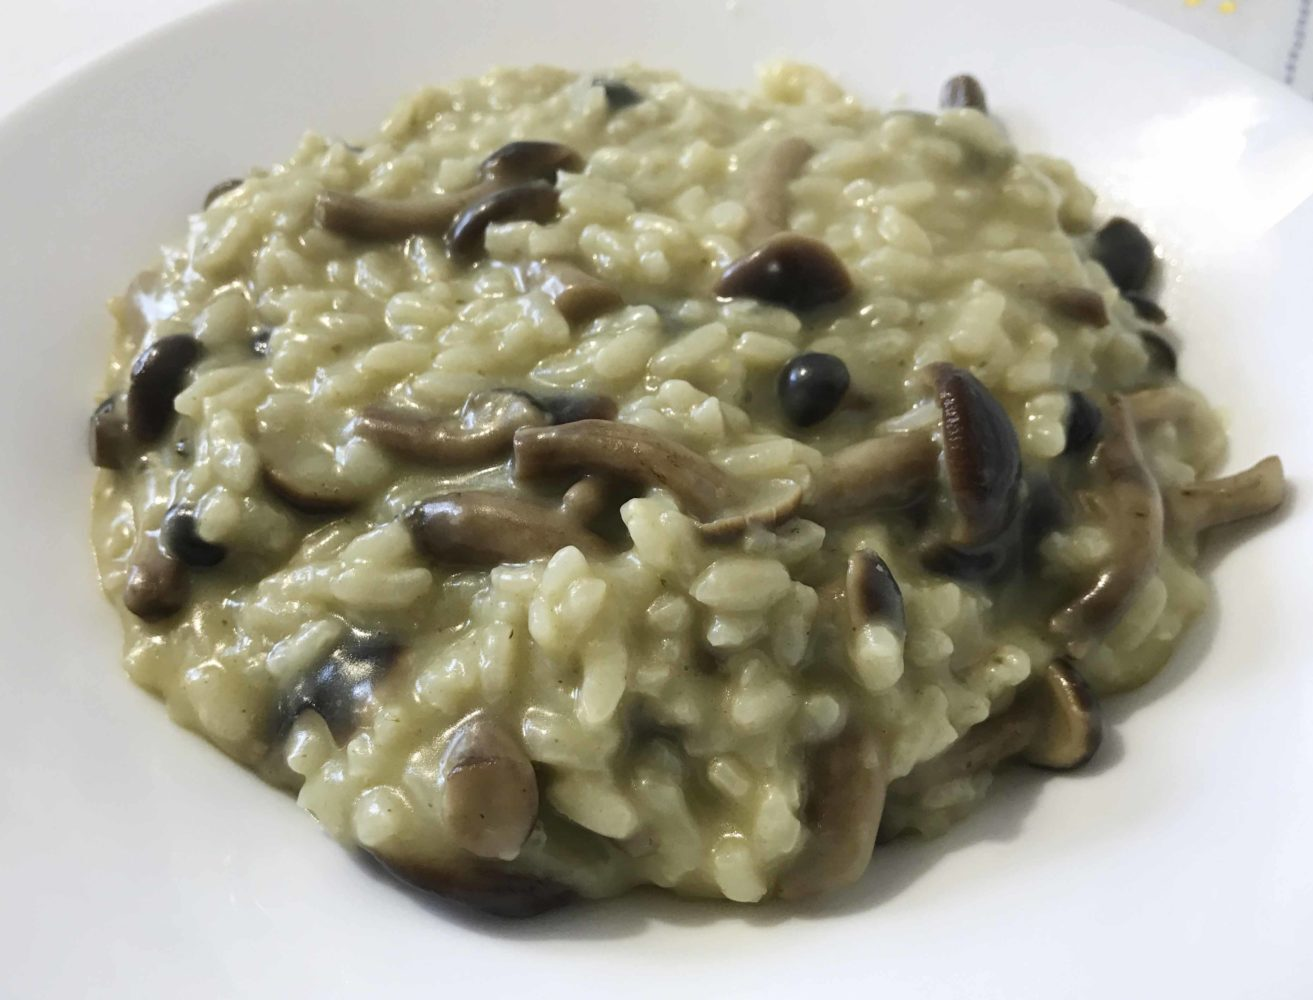 Risotto con pioppini e asiago